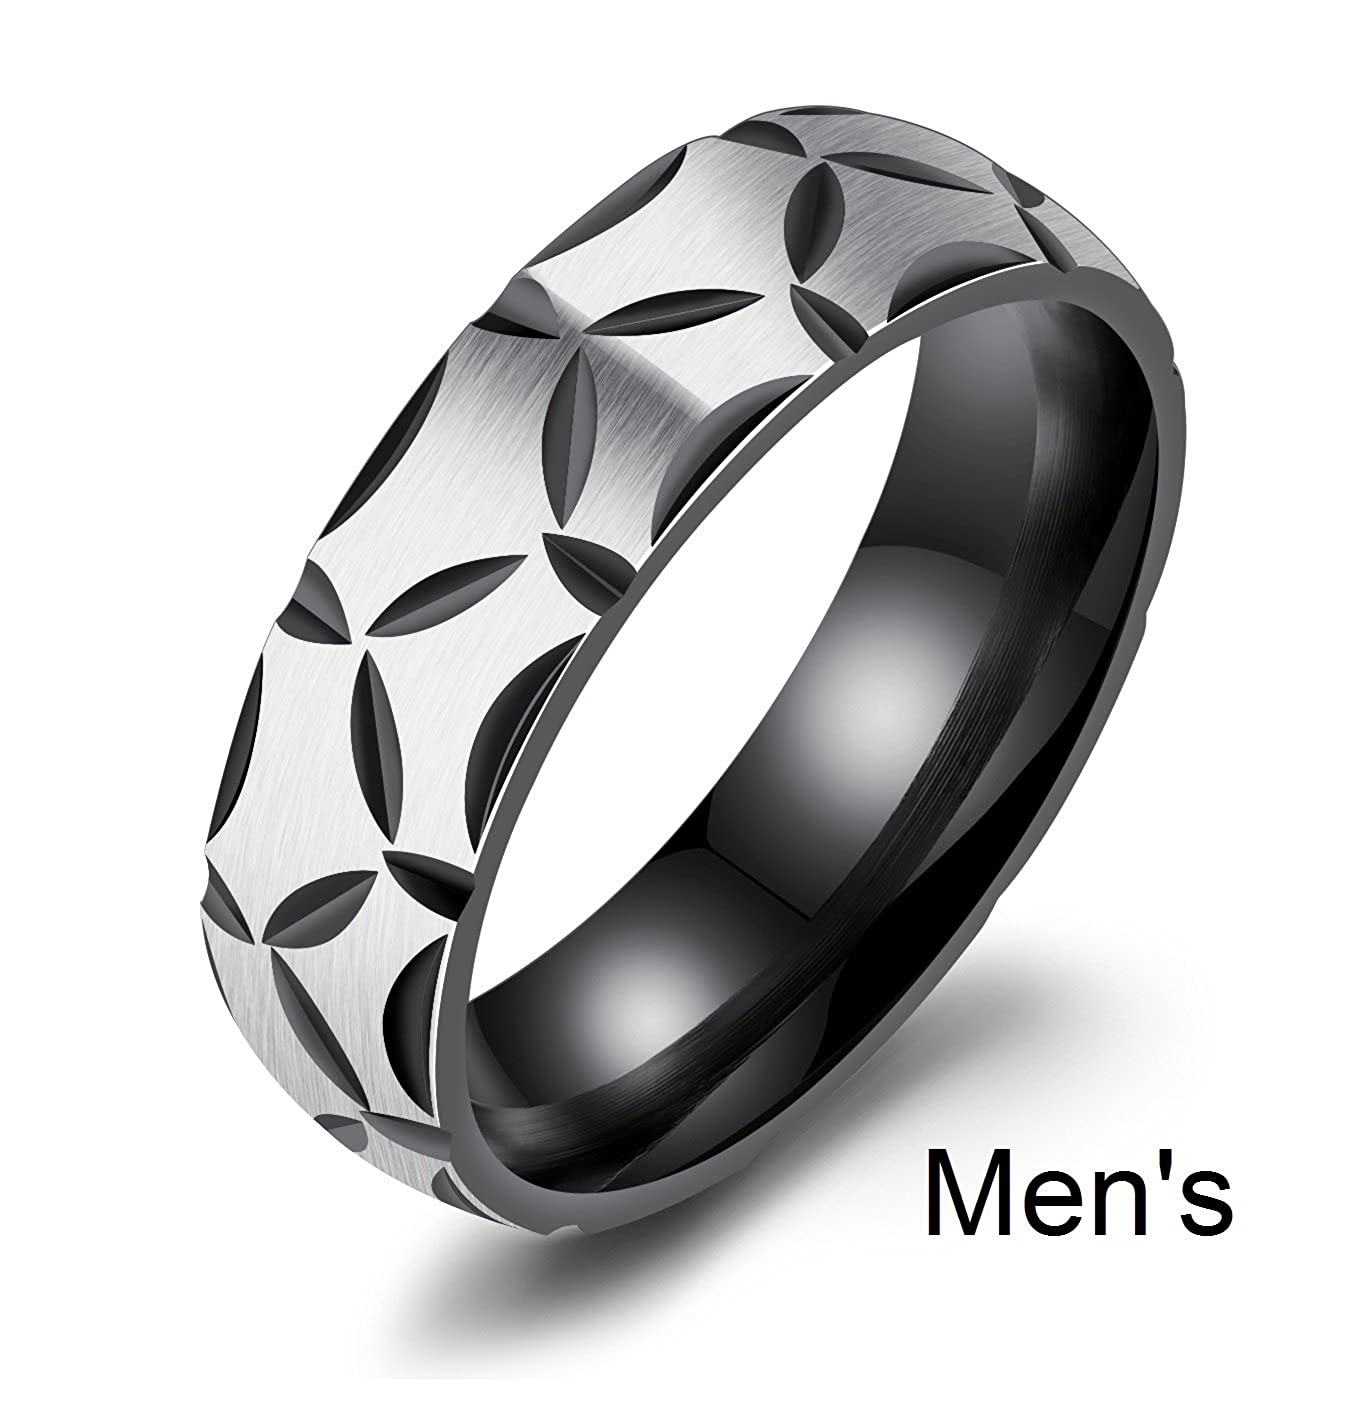 Amazing Black Power Titanium Stainless Steel Wedding Band Set Anniversary Engagement Promise Ring